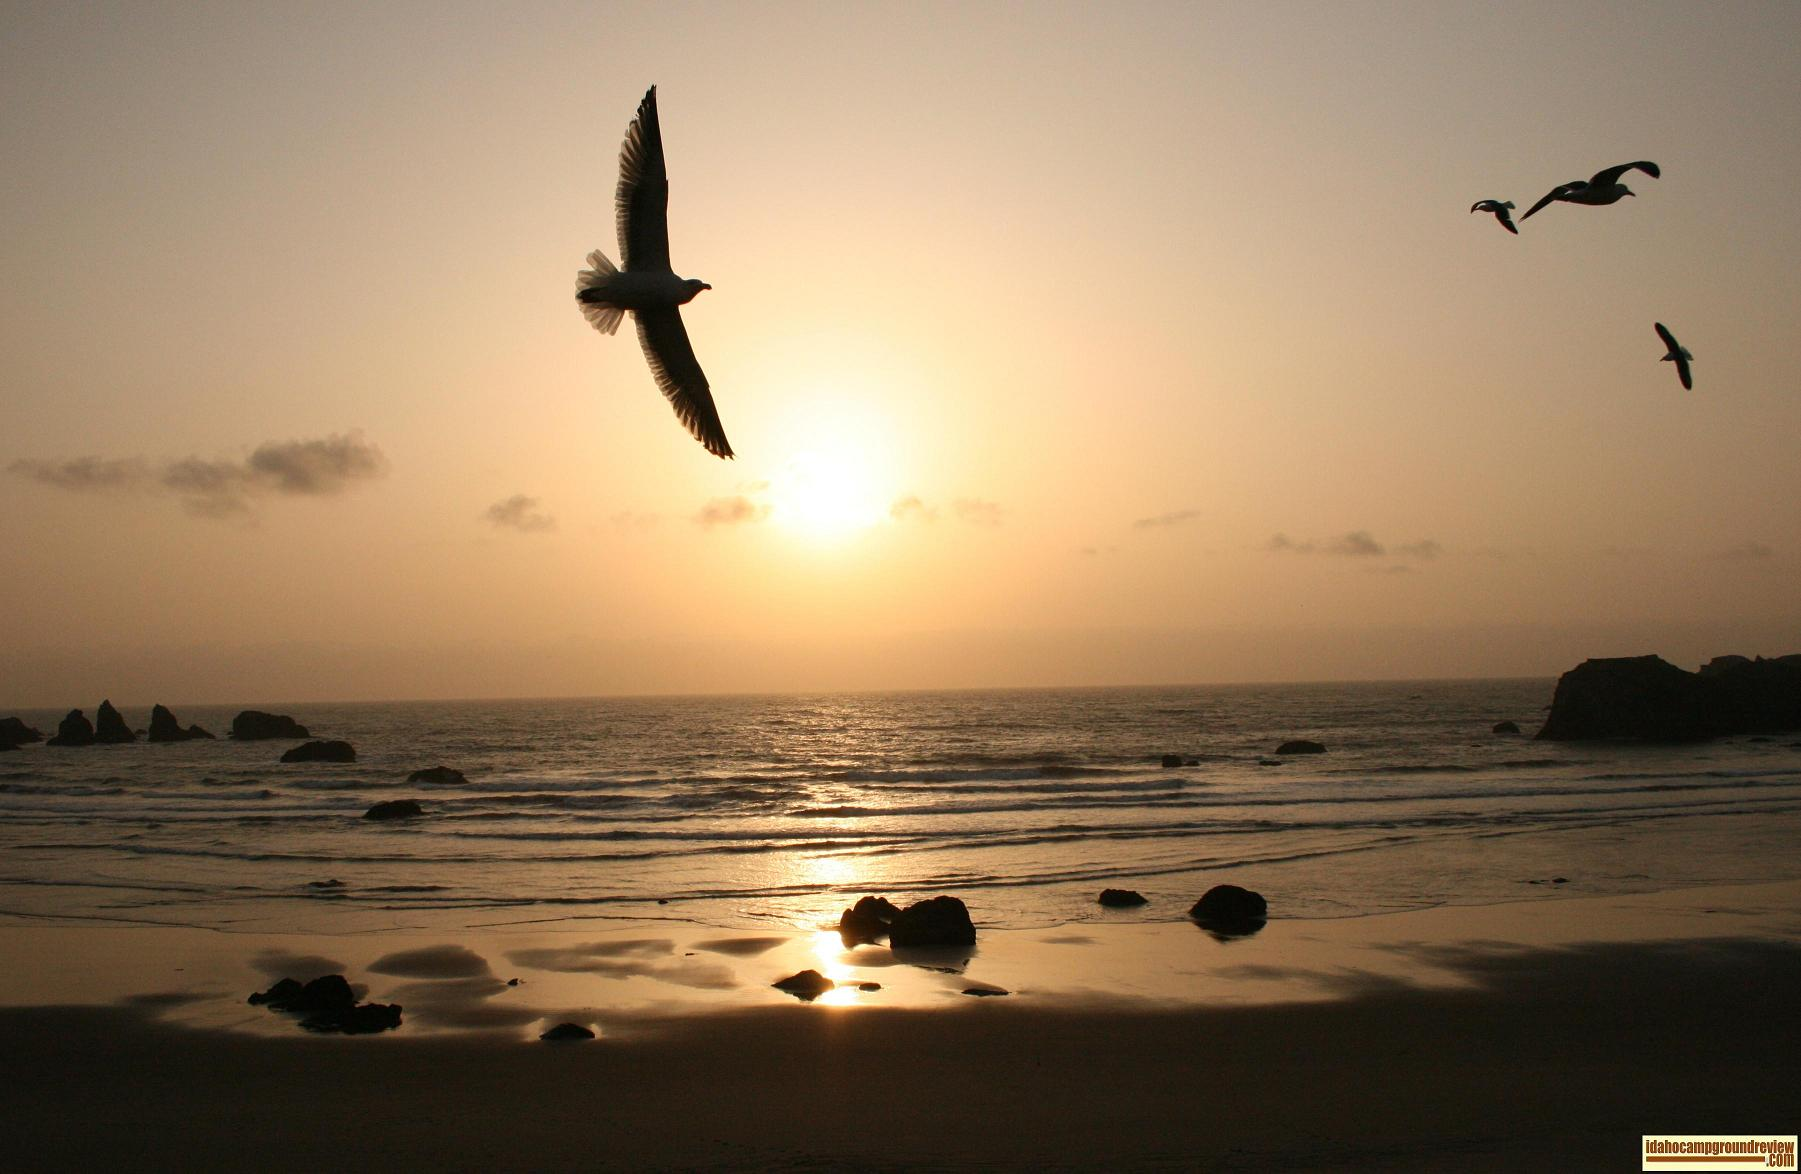 Picture of sunset with seagulls soaring in the sun at the beach in Bandon, Oregon.